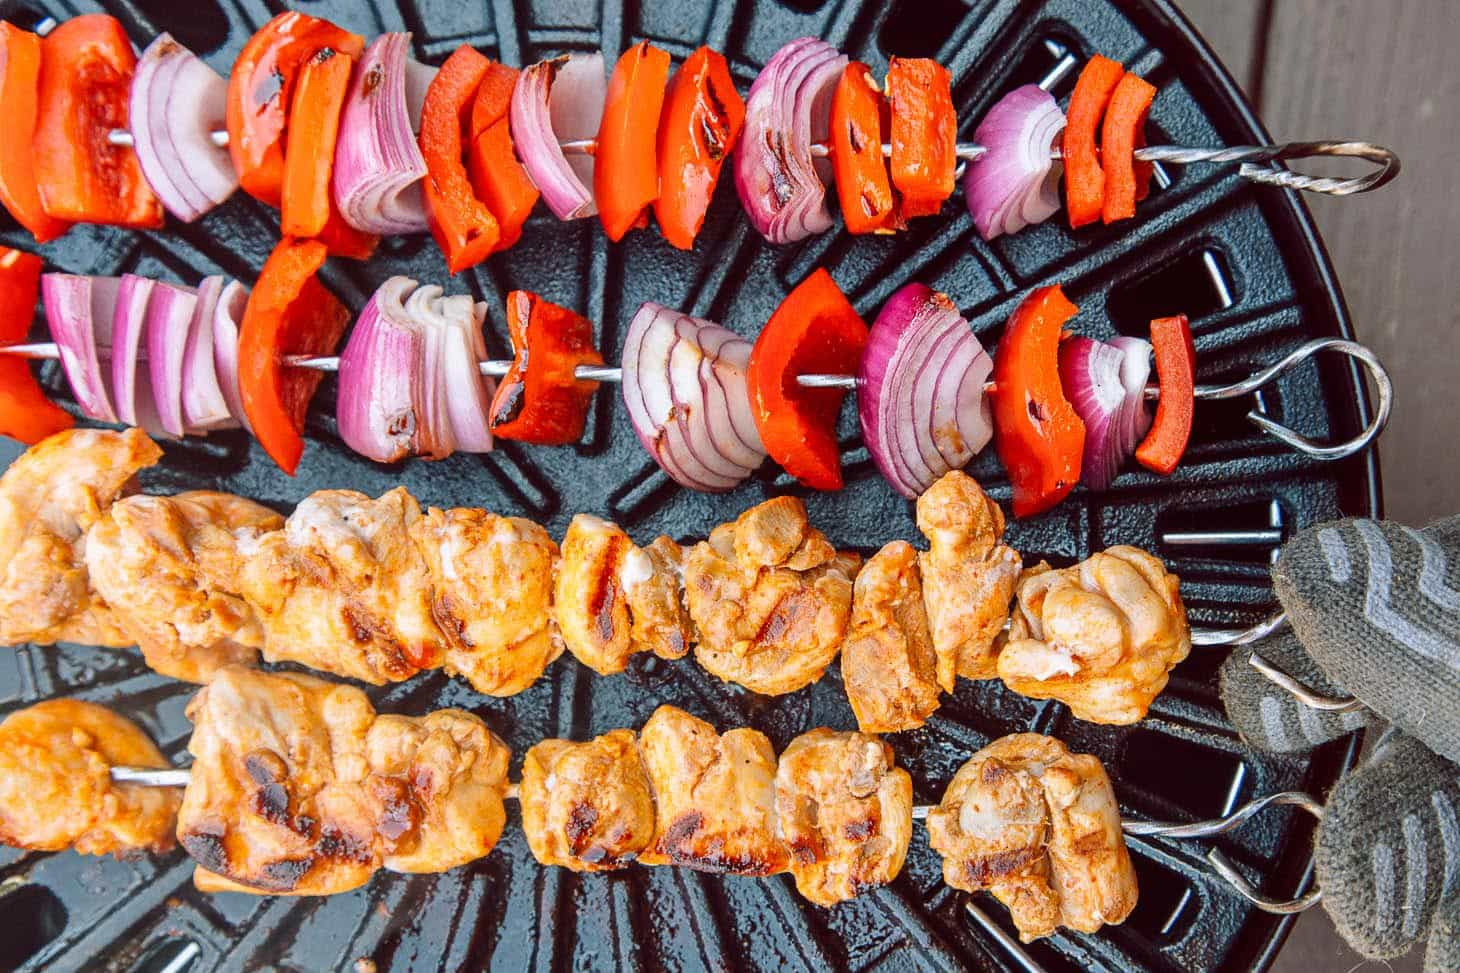 These satay-inspired Thai Grilled Chicken Skewers are perfect for cooking right on the campfire.